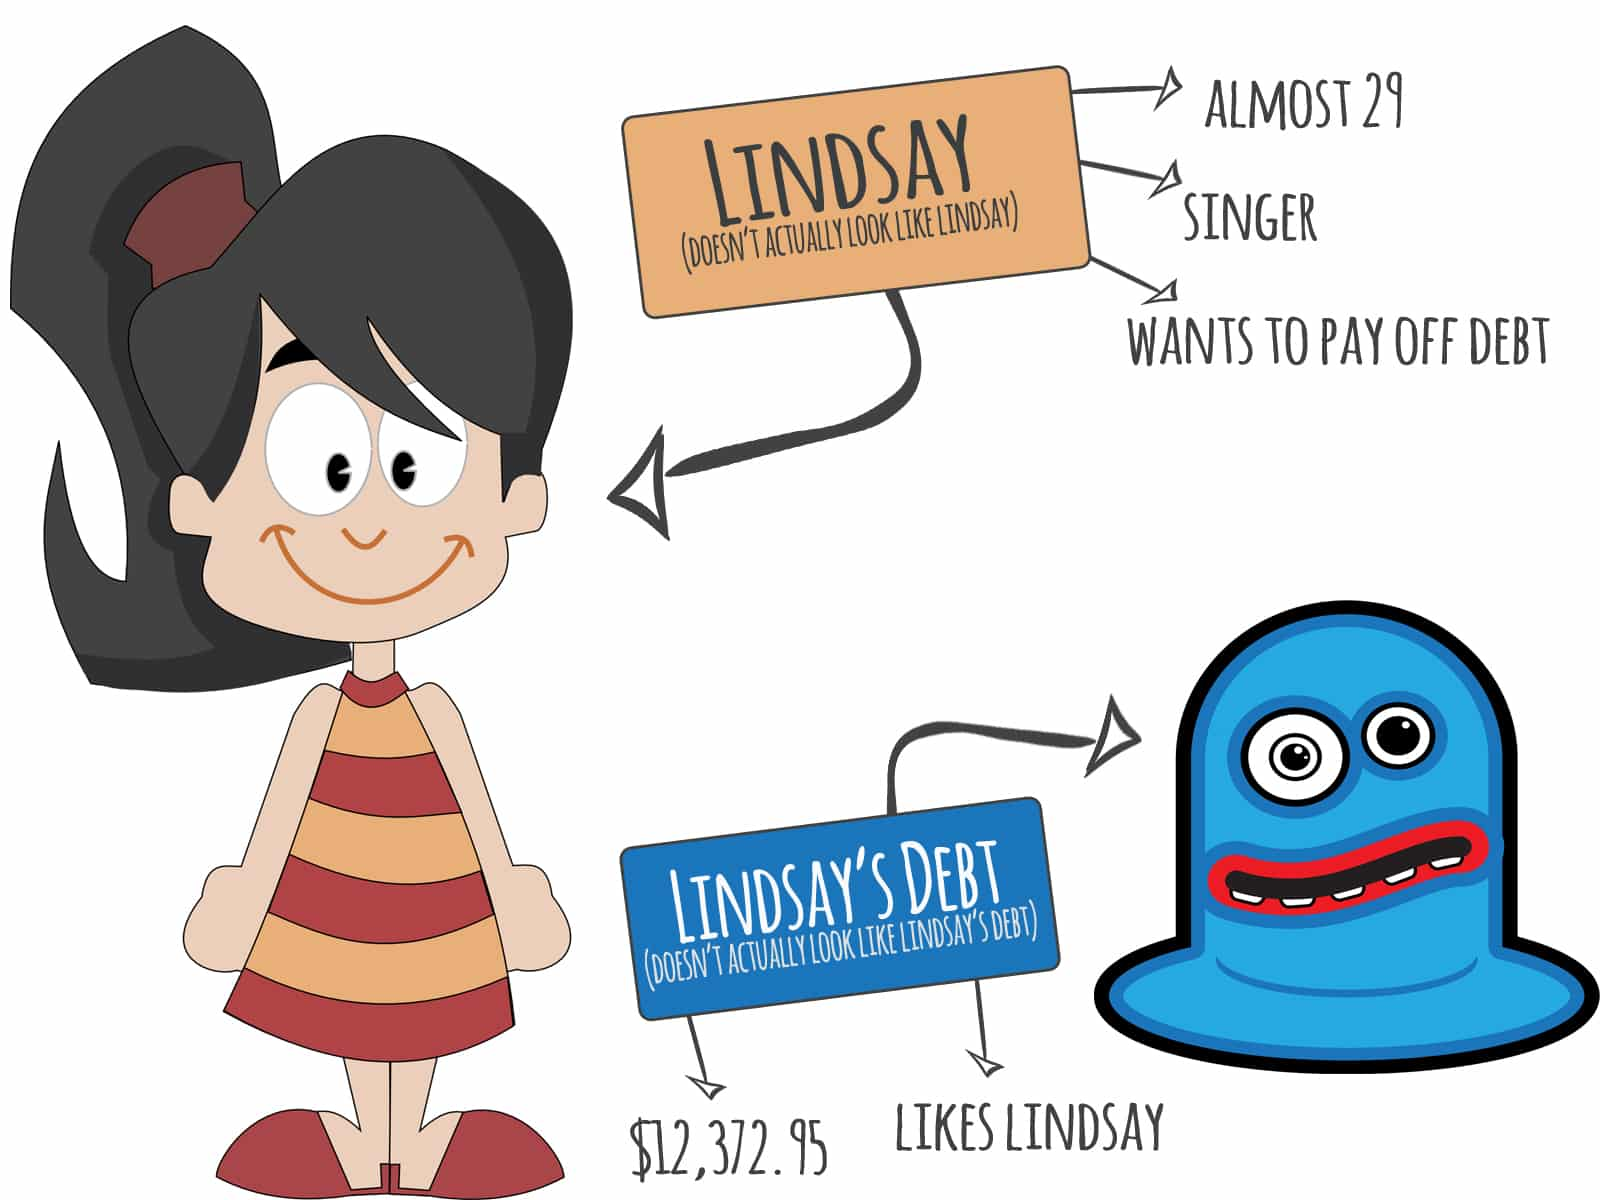 Lindsay is a singer, almost 29, how wants to pay her debt. Her debt is 12, 372.95